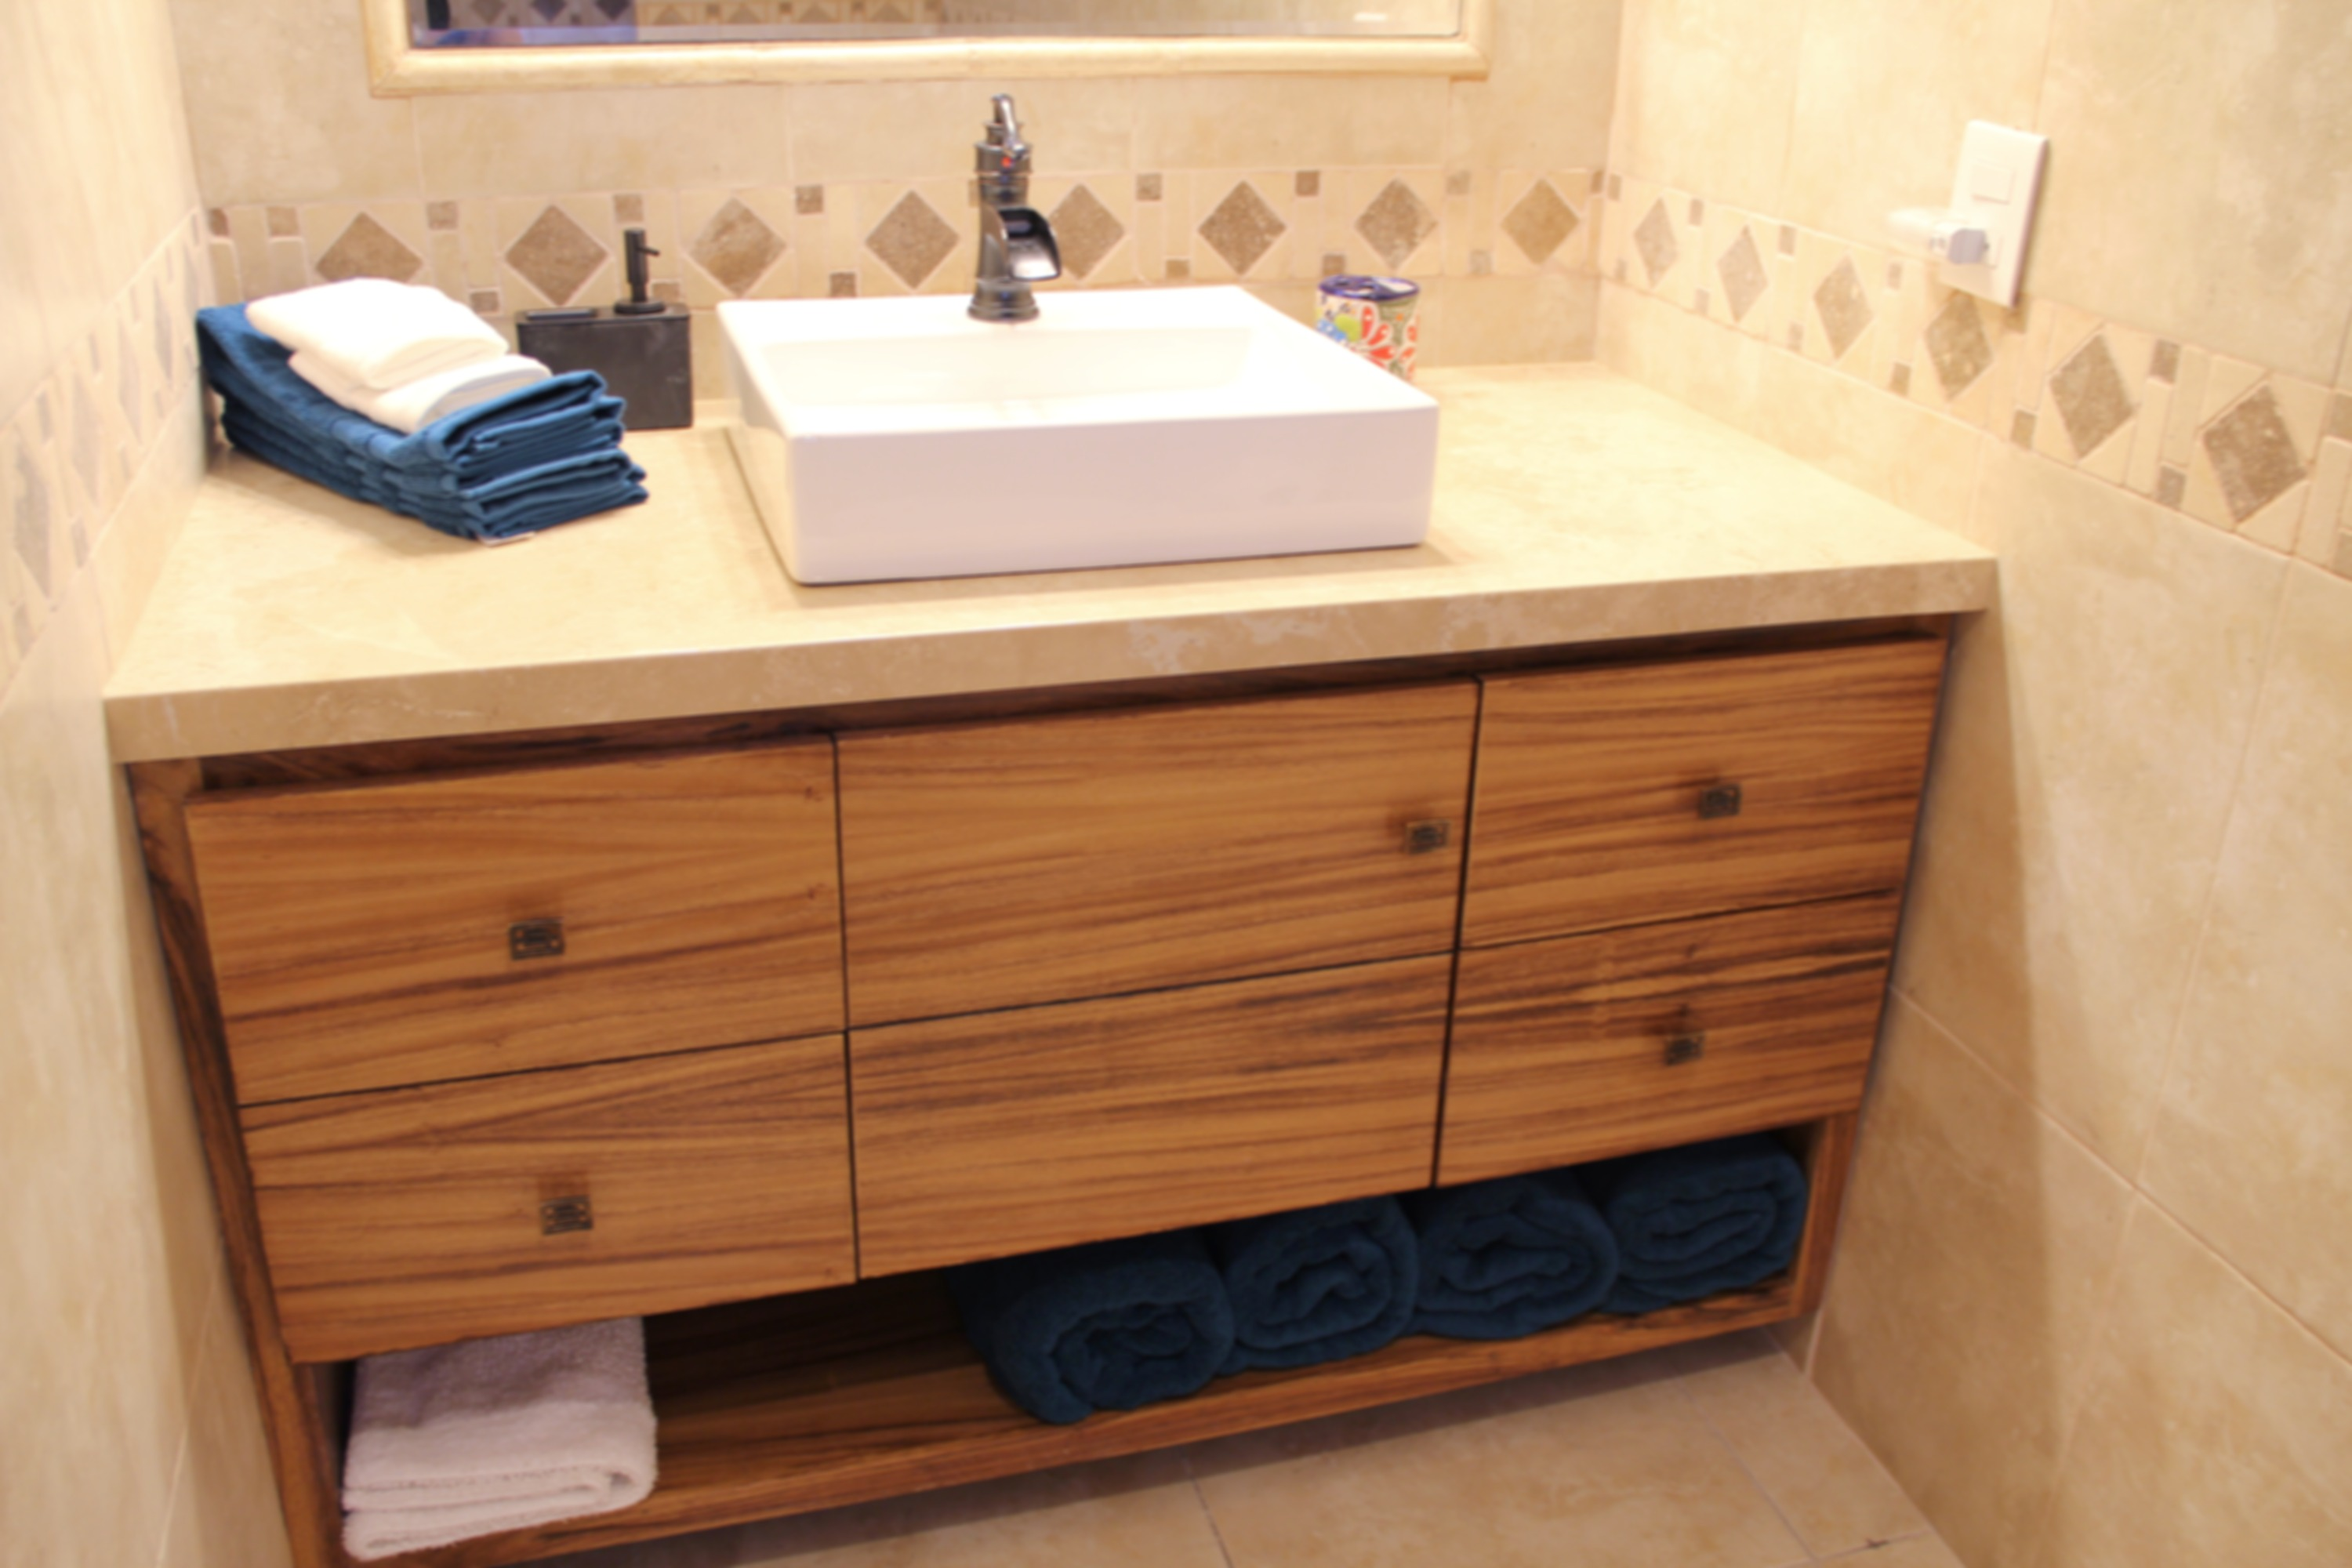 Modern vanity with storage and towels.